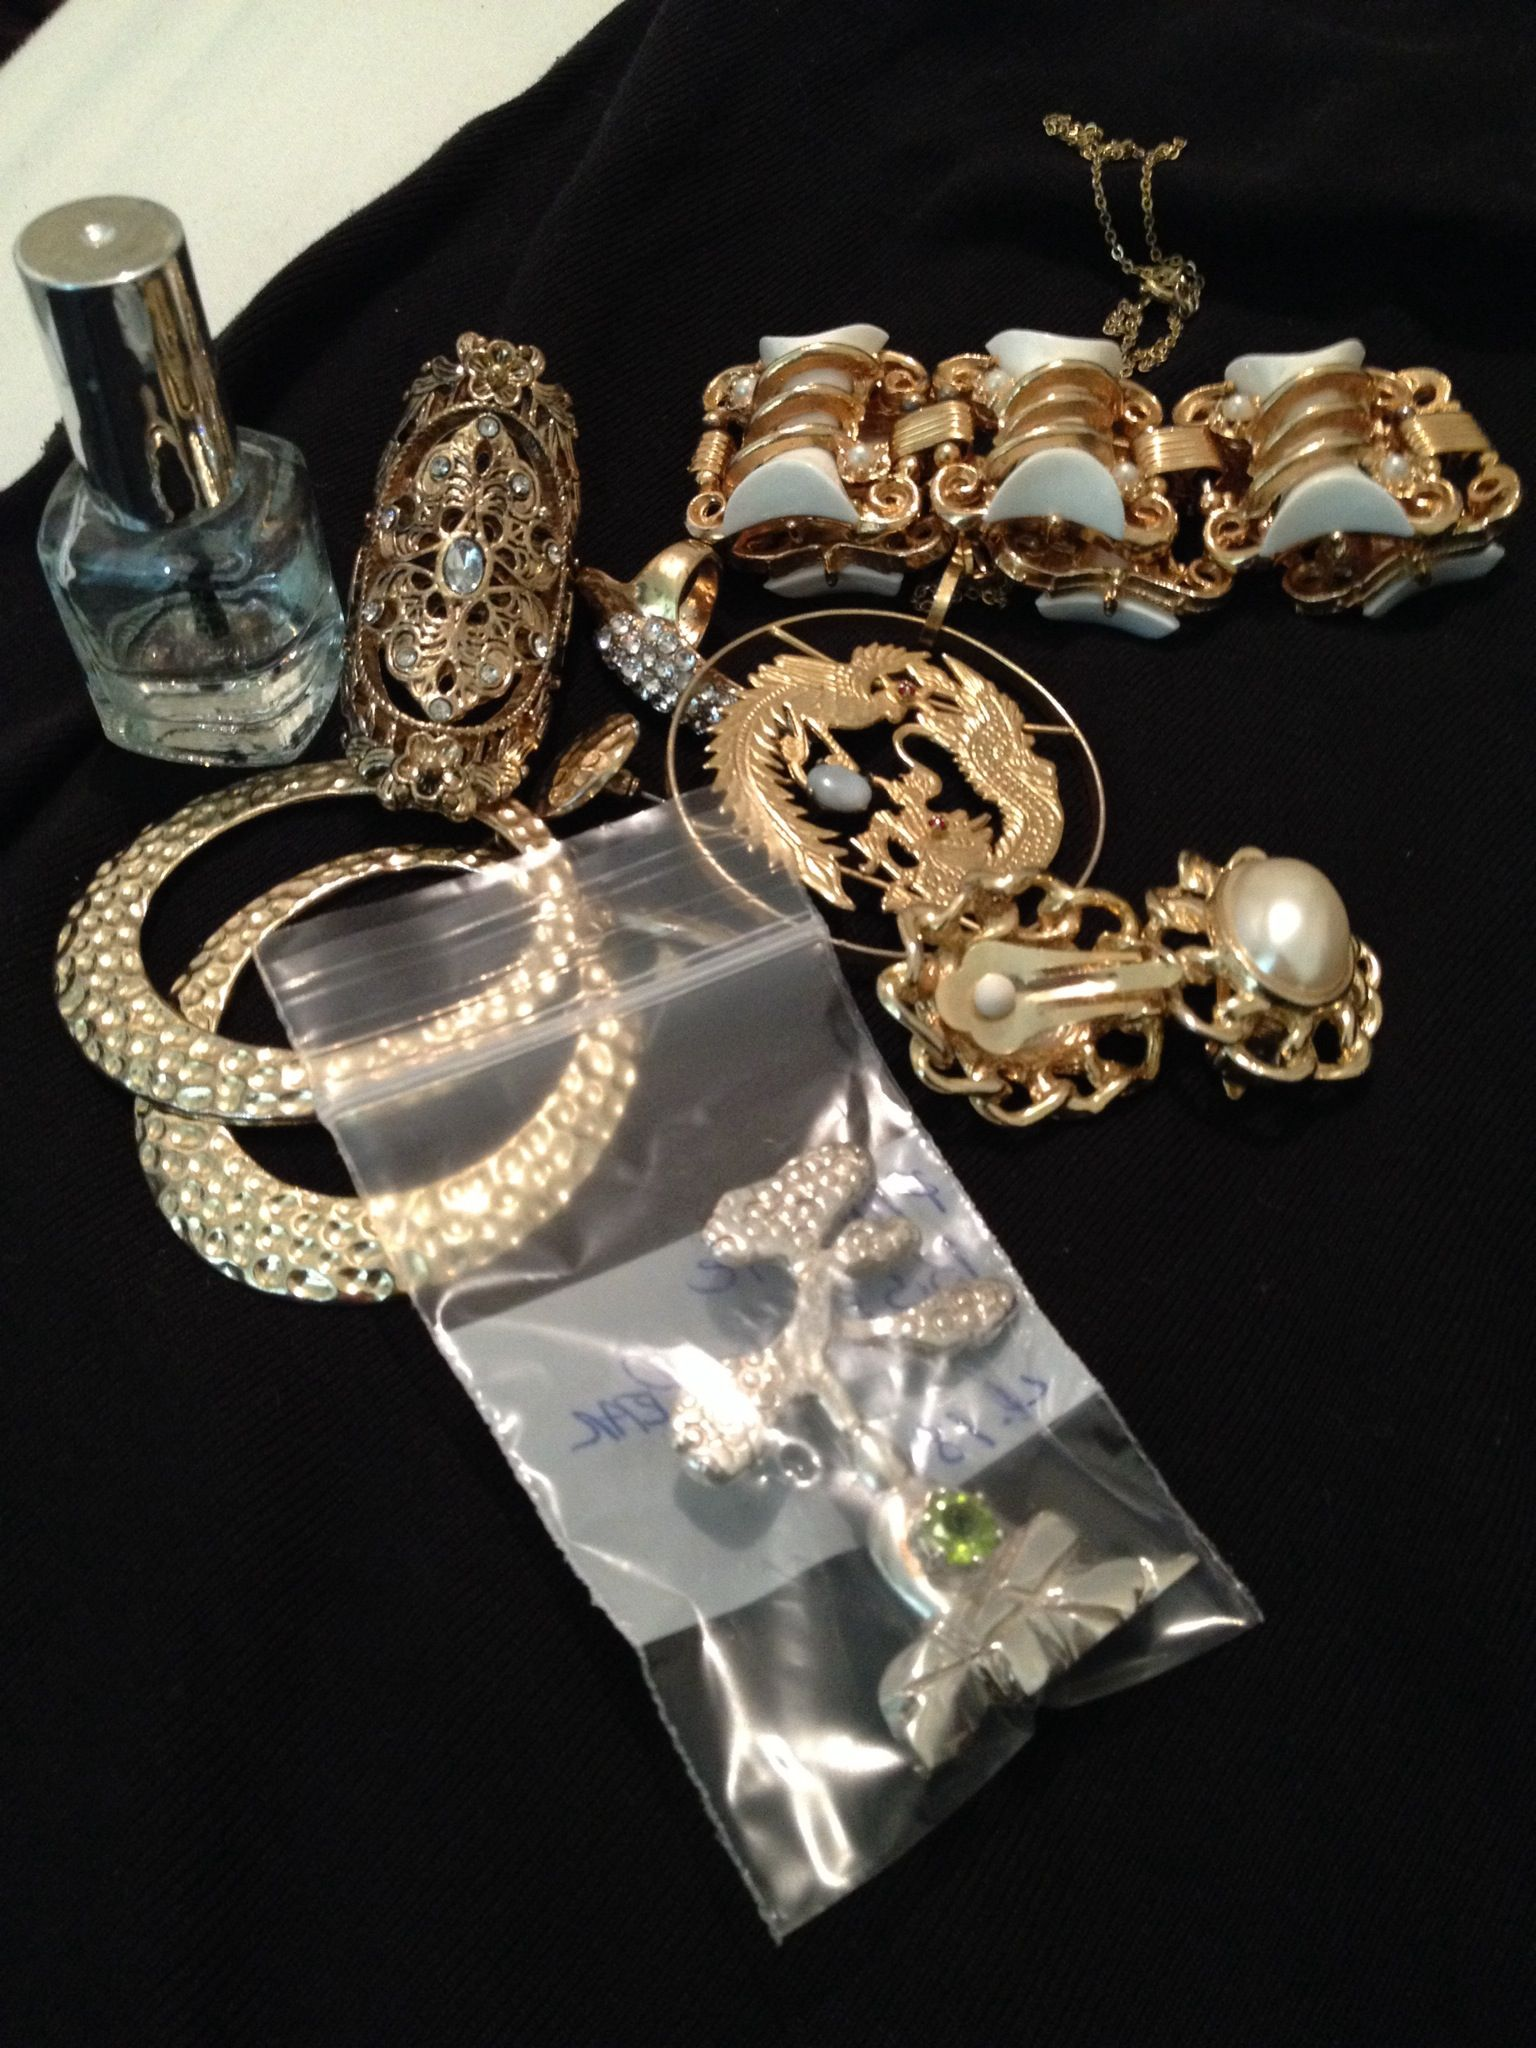 18++ Fake jewelry that looks real for sale viral